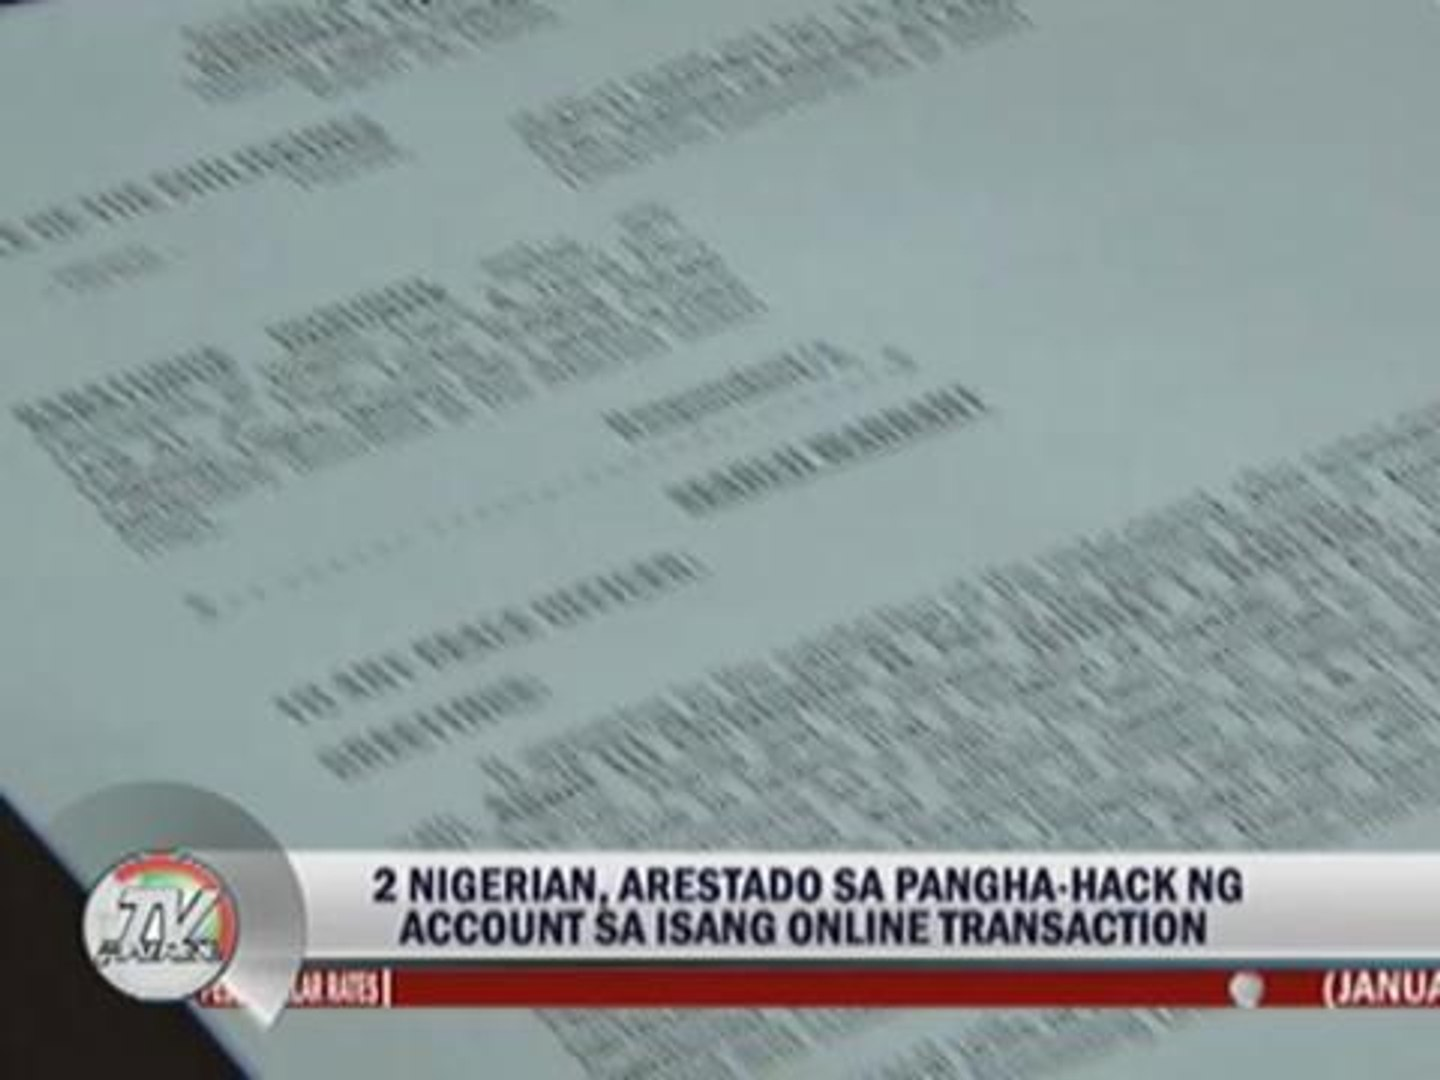 Alleged Nigerian hackers arrested